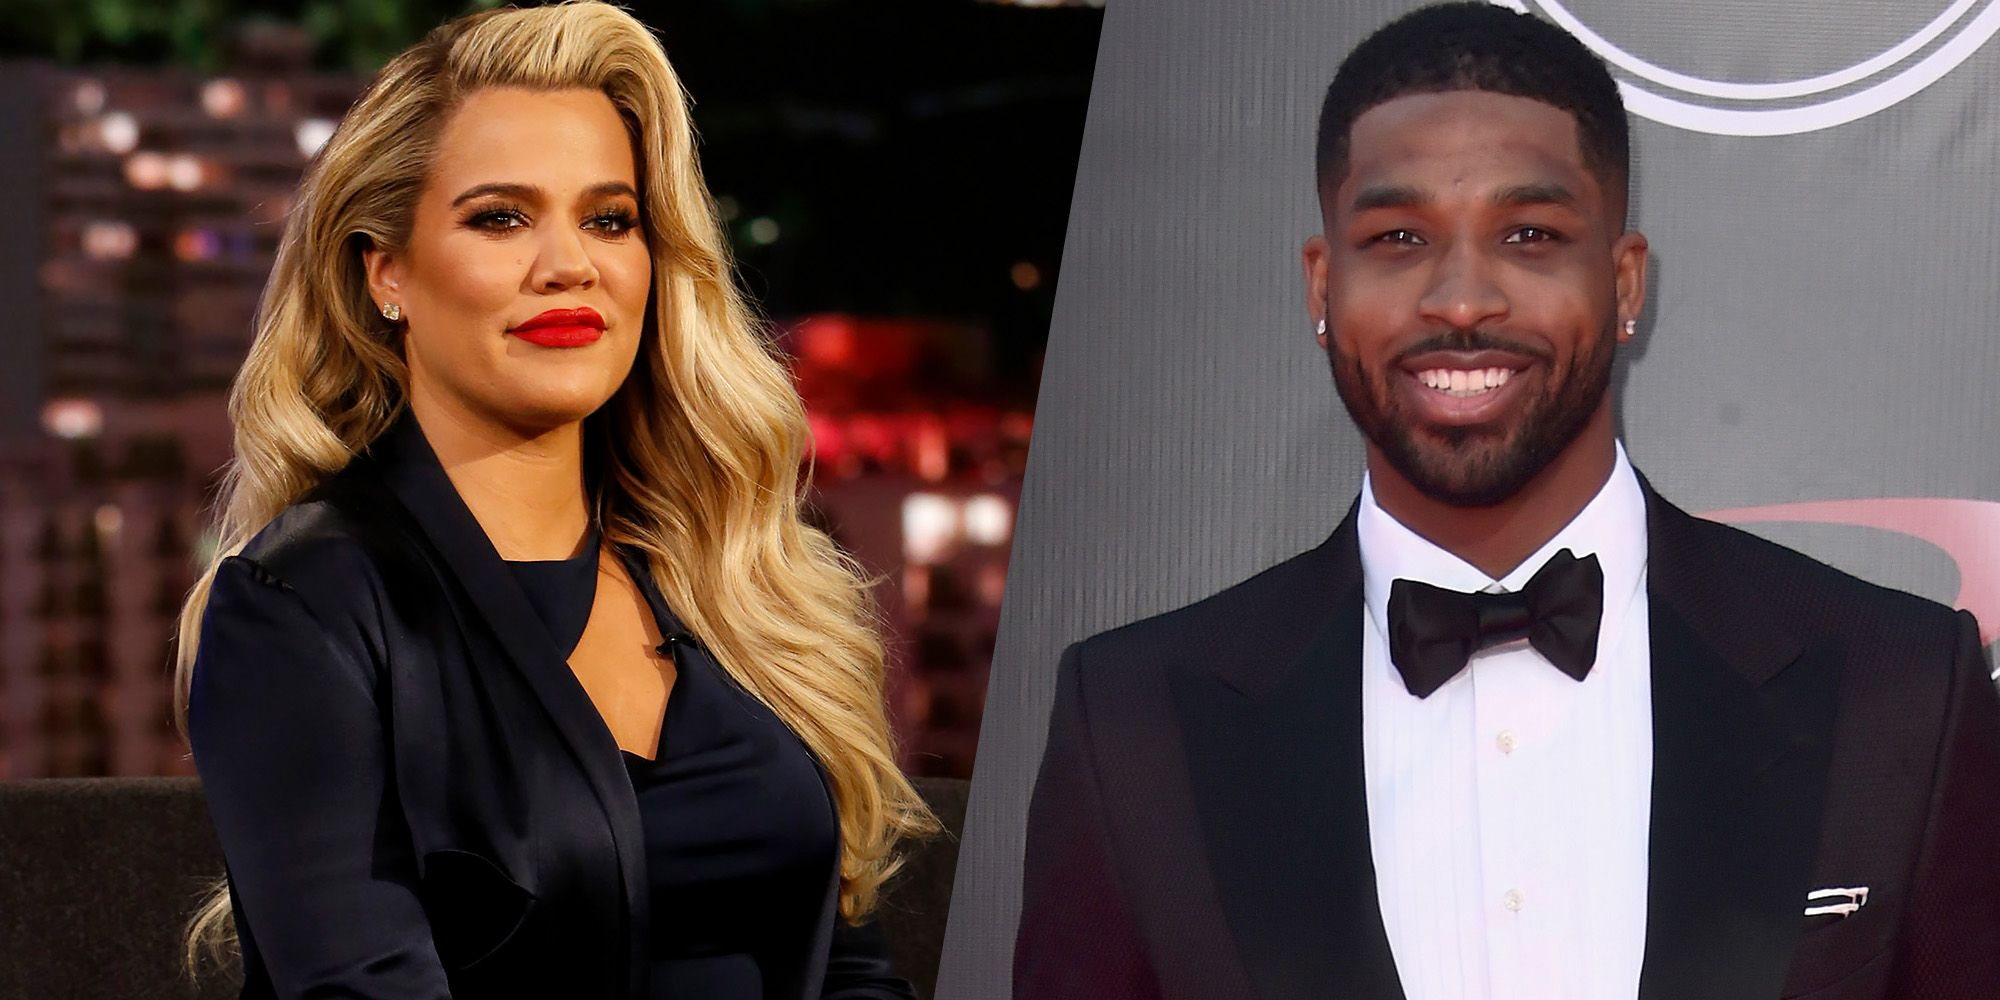 KUWTK: Tristan Thompson Showers Khloe Kardashian With Love After She Posts Another Hot Pic – 'My Queen!'